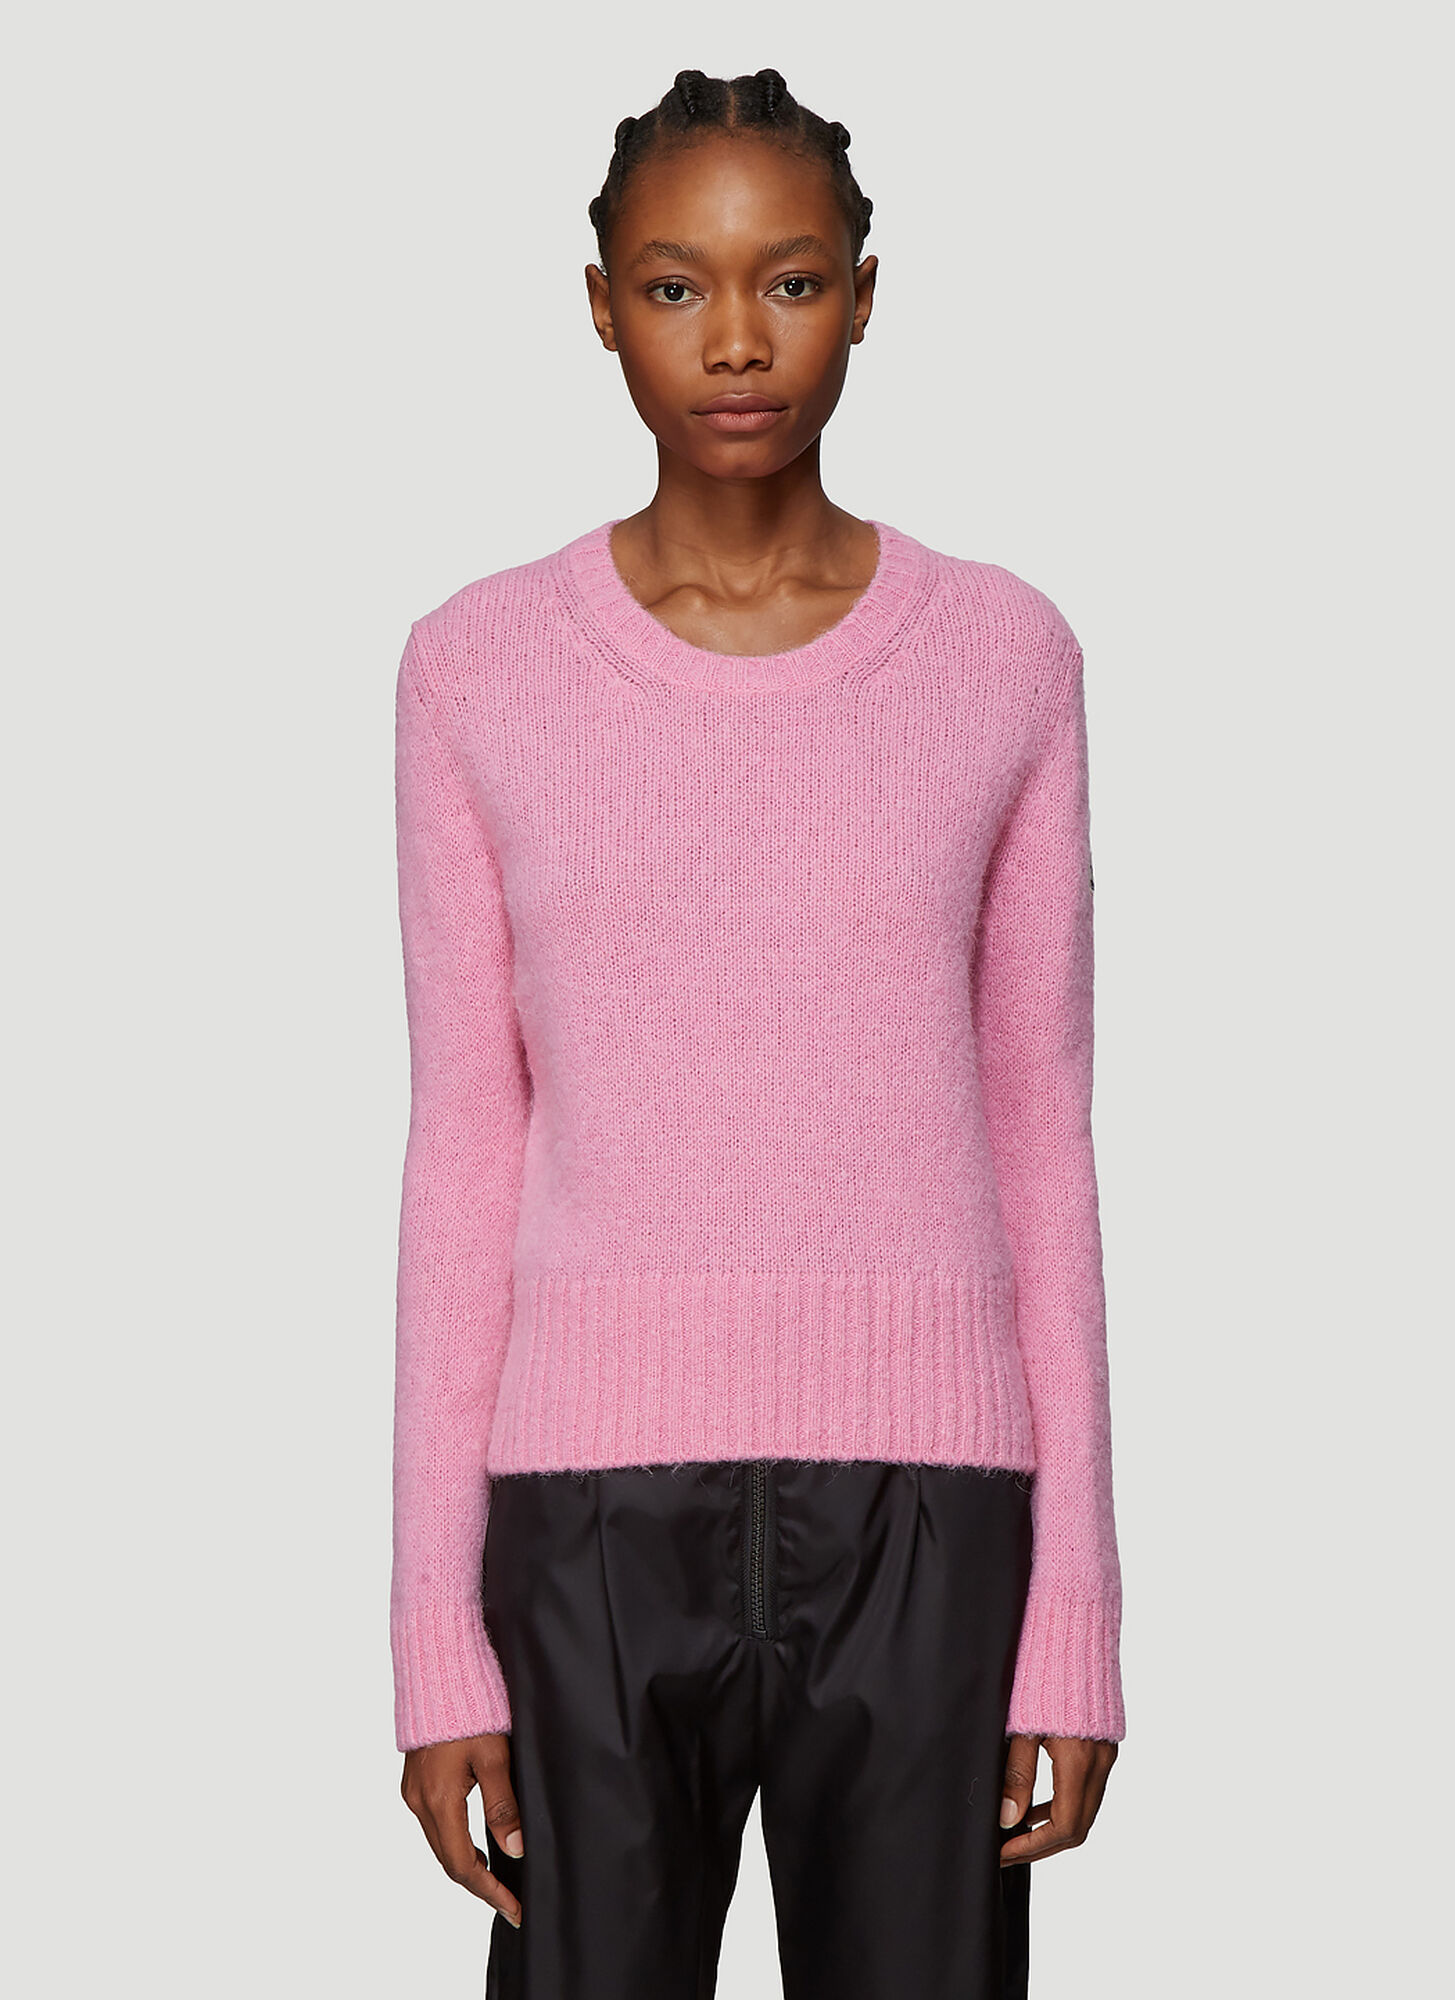 Moncler Maglione Tricot Sweater in Pink